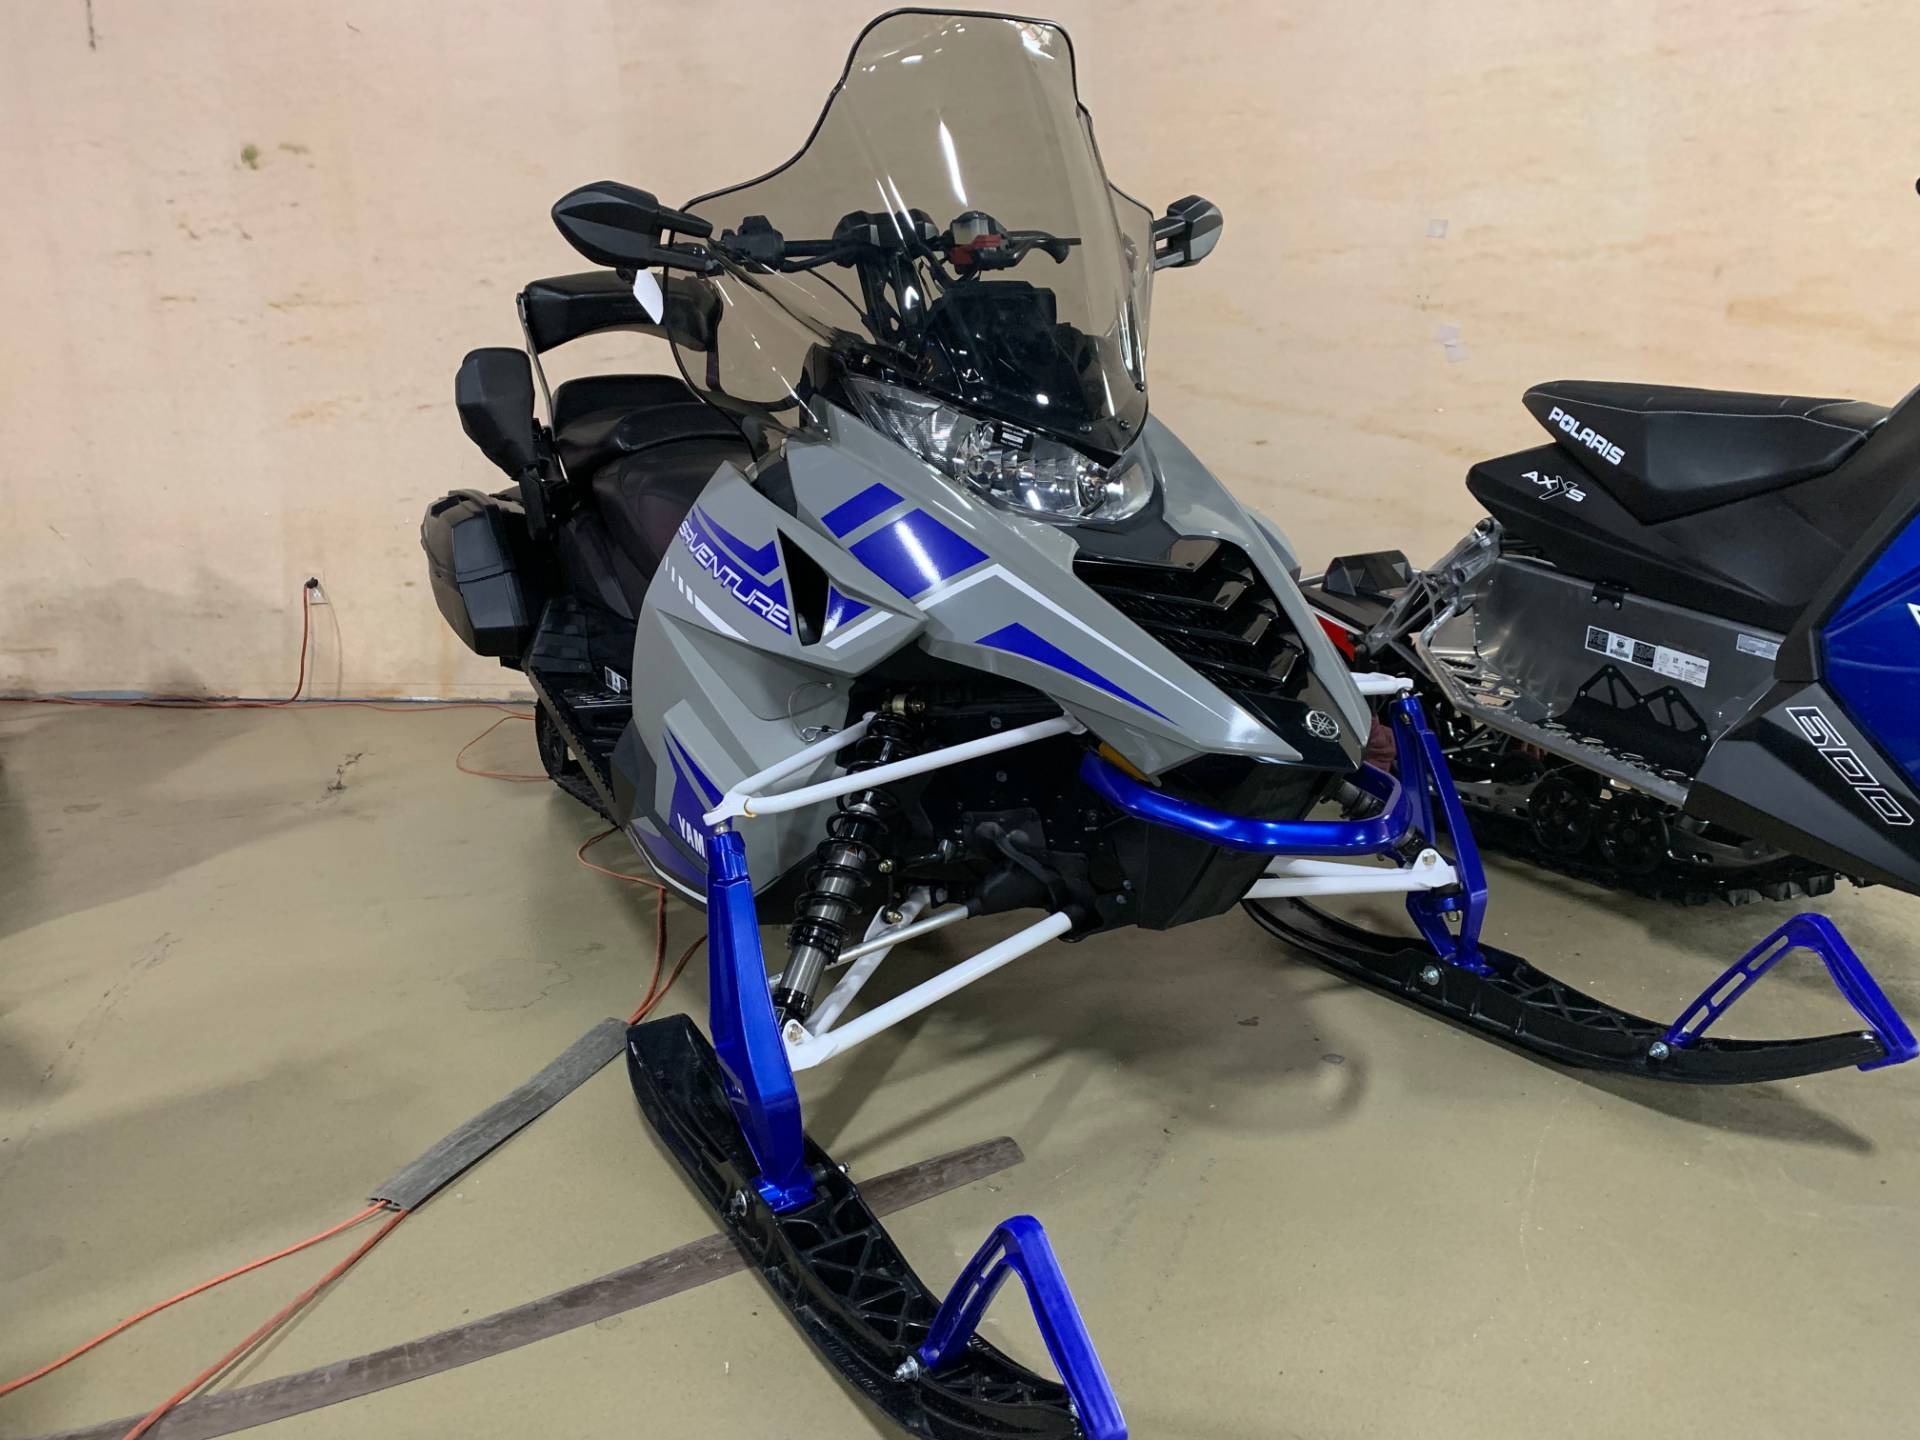 2018 Yamaha SRVenture DX in Dimondale, Michigan - Photo 3